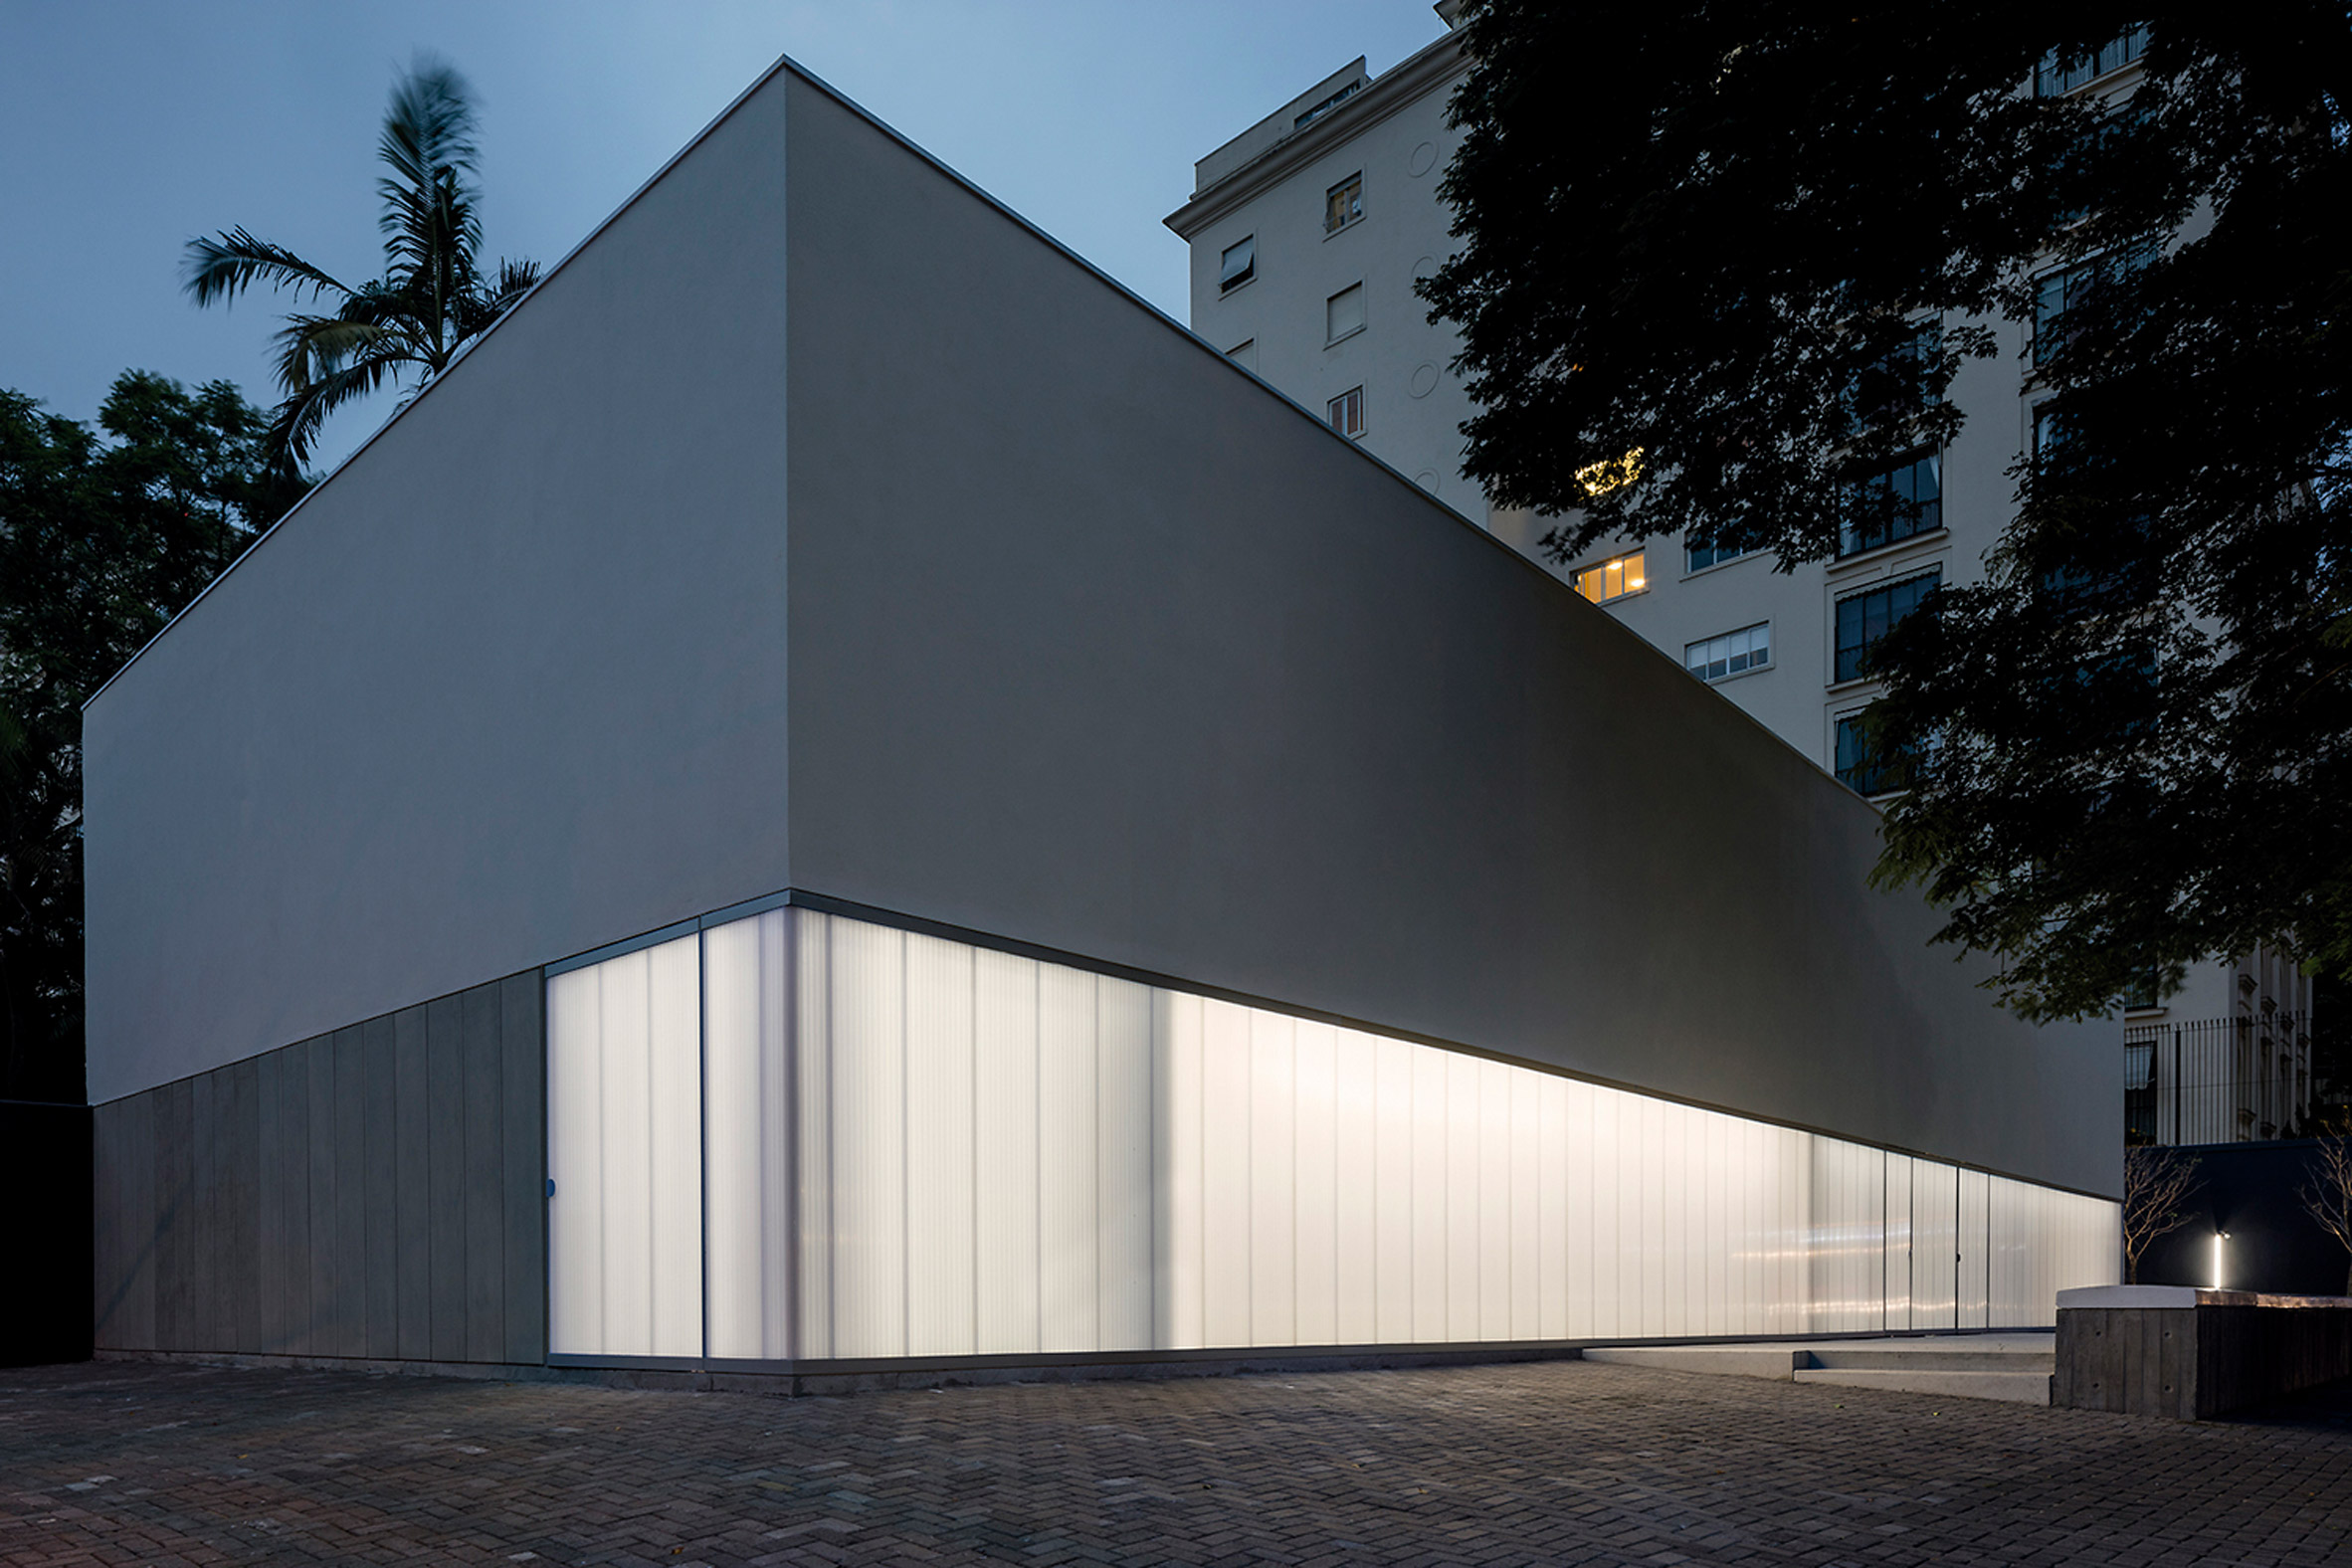 Translucent panels create glowing facade for São Paulo gallery by Metro